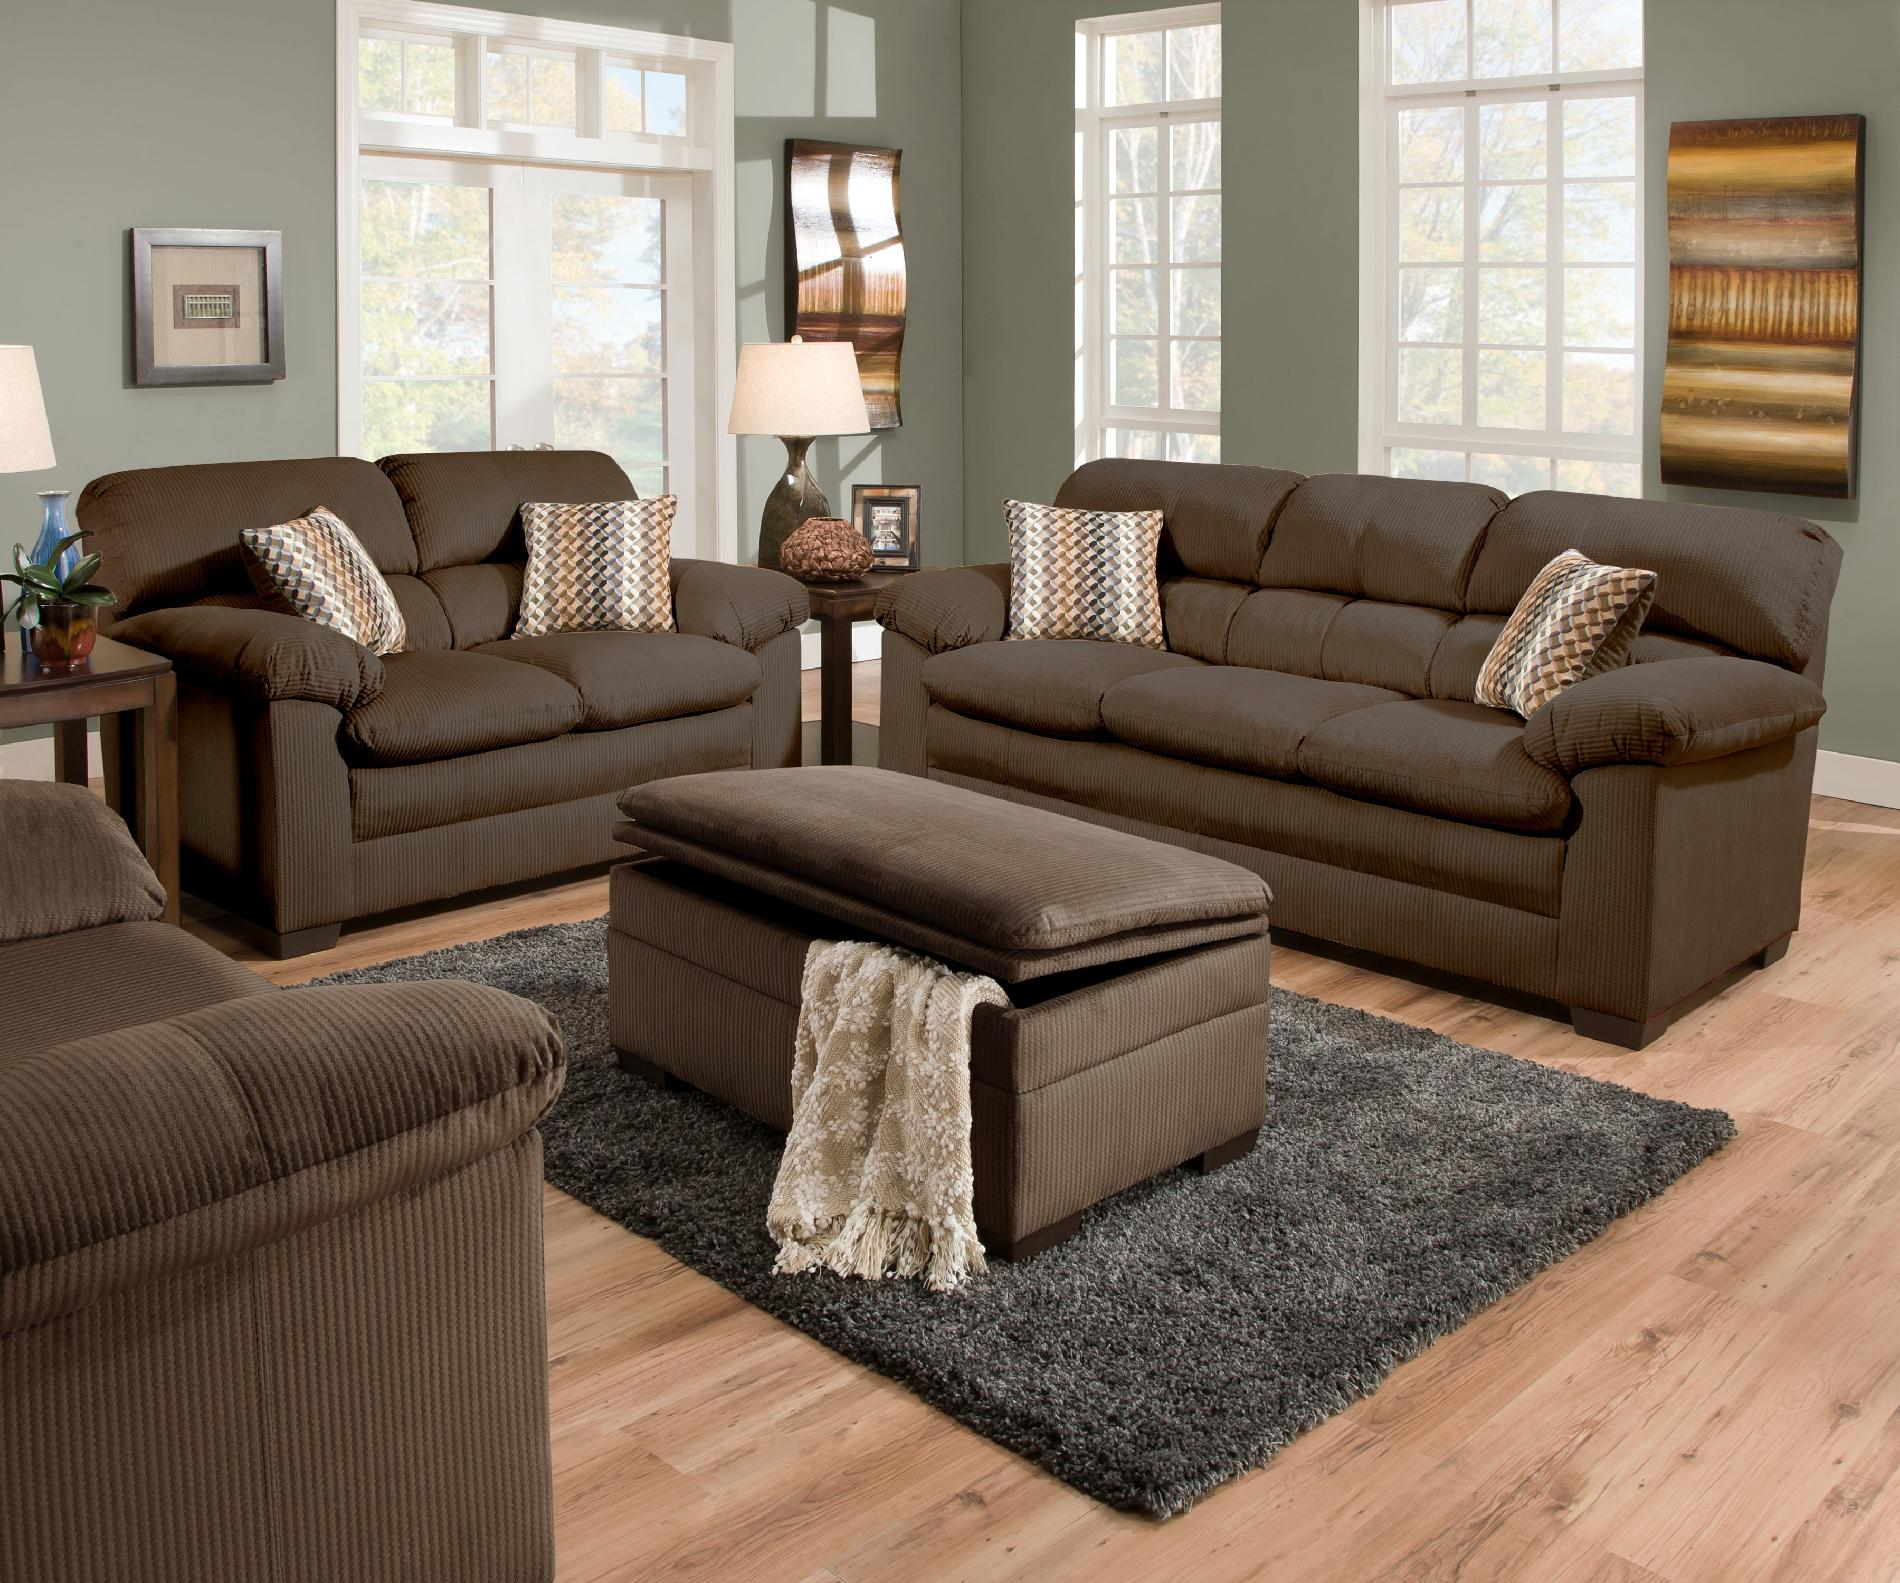 sofa mart lakewood patio outdoor furniture wicker set simmons upholstery loveseat cappucinno shop